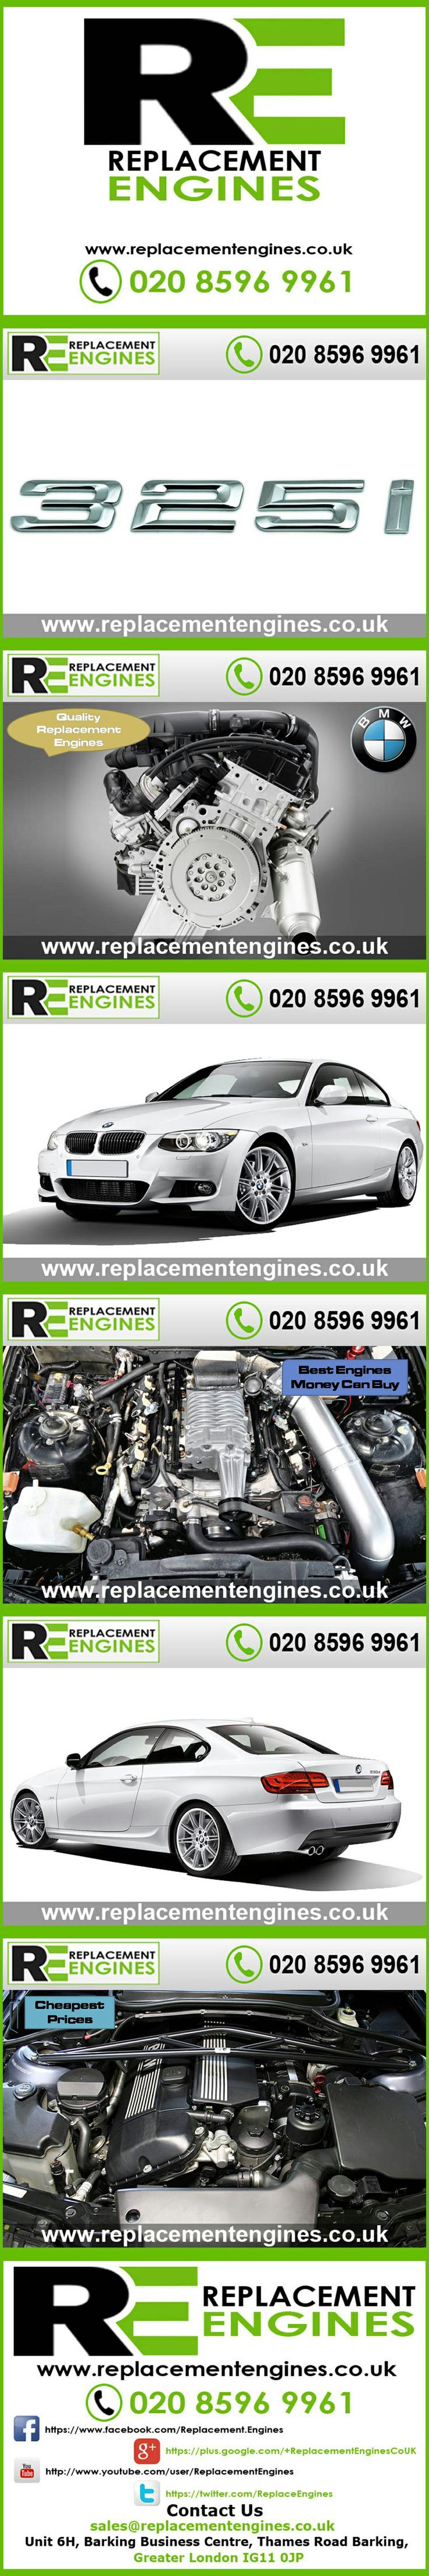 BMW 325i engines for sale at the cheapest prices, we have low mileage used & reconditioned engines in stock now, ready to be delivered to anywhere in the UK or overseas, visit Replacement Engines website here.